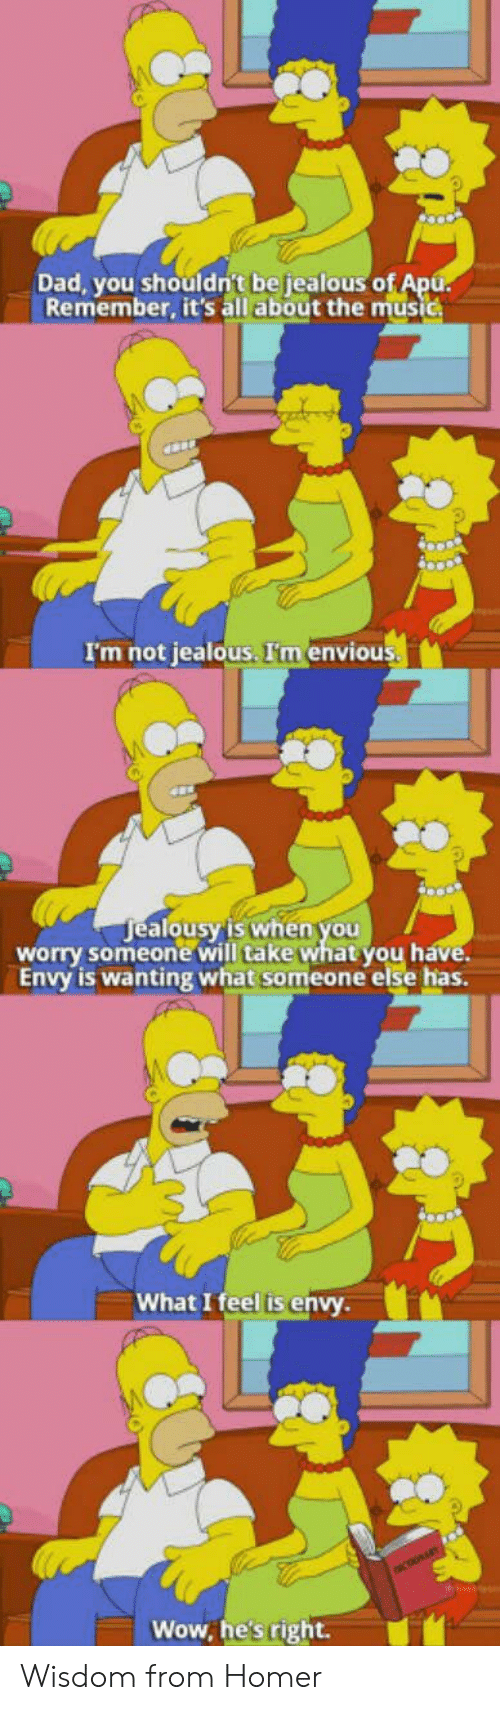 envious: Dad, you shouldn't be jealous o  Remember, it's all about the music  I'm not jealous. I'm envious  ealousy'is when you  alo  worry someone will take what you h  Envy is wanting what someone else has.  What I feel is envy  Wow, he's right. Wisdom from Homer